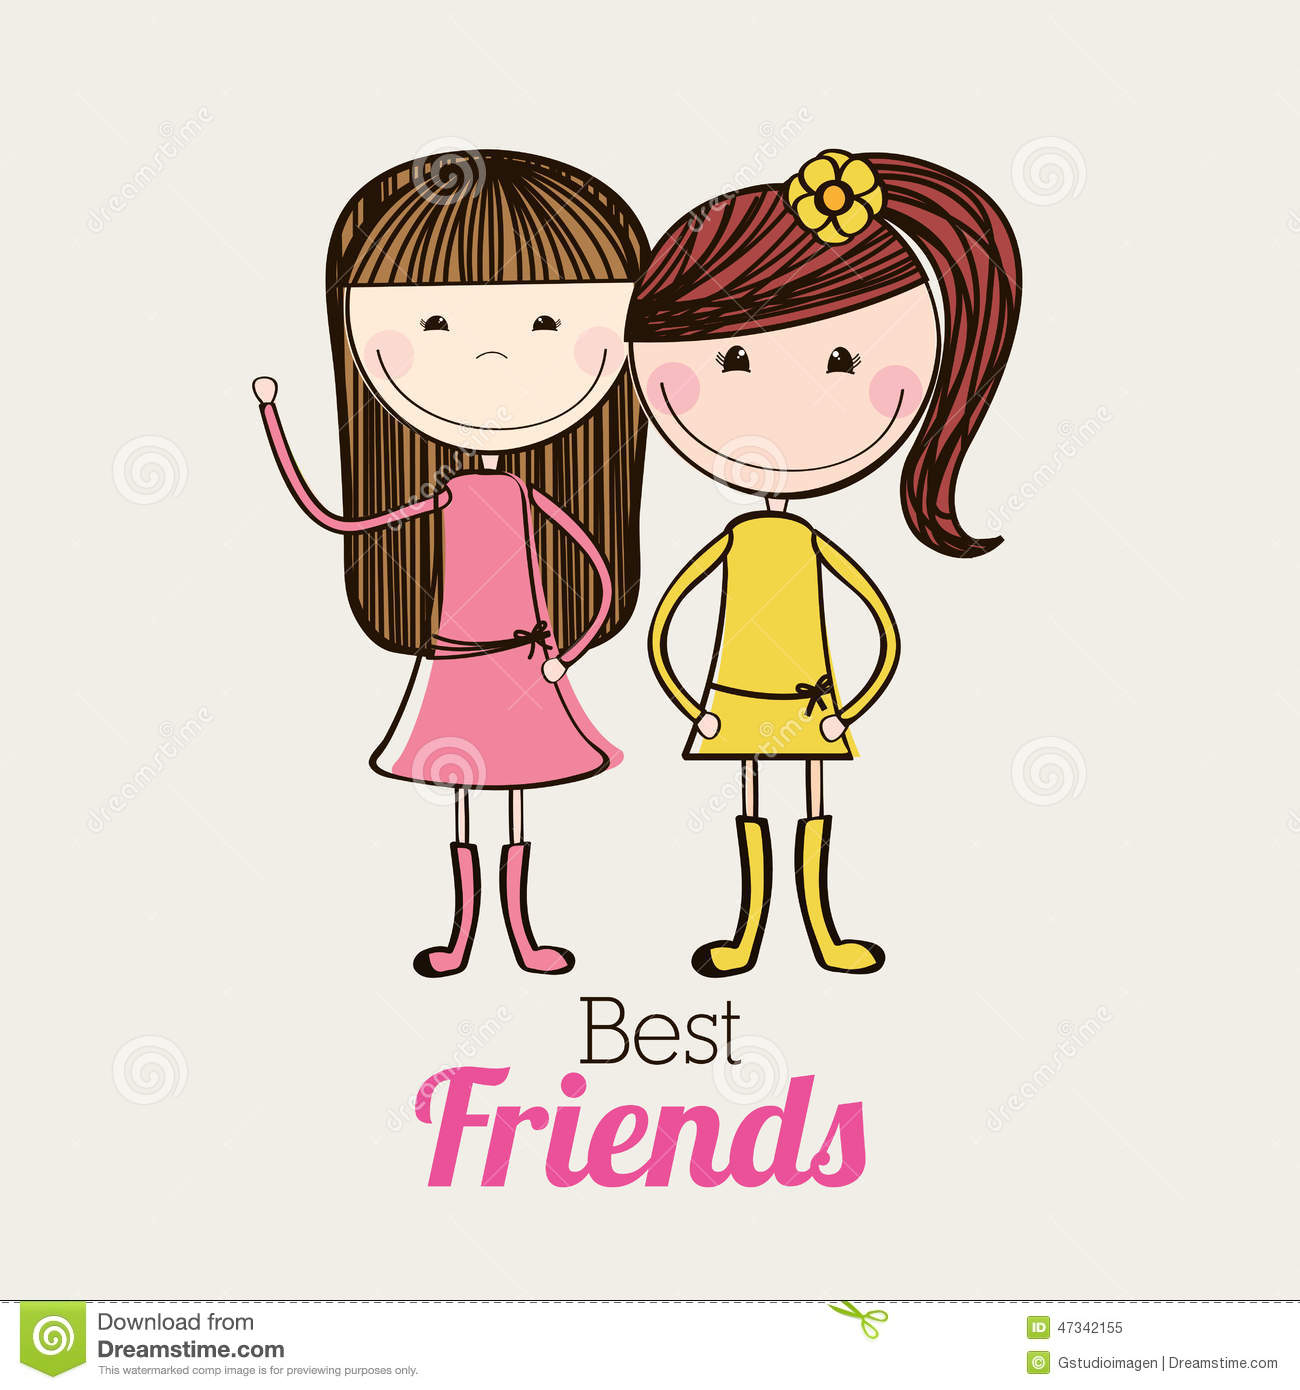 Wallpaper Of Cute Couple With Quotes Best Friends Design Stock Vector Image 47342155